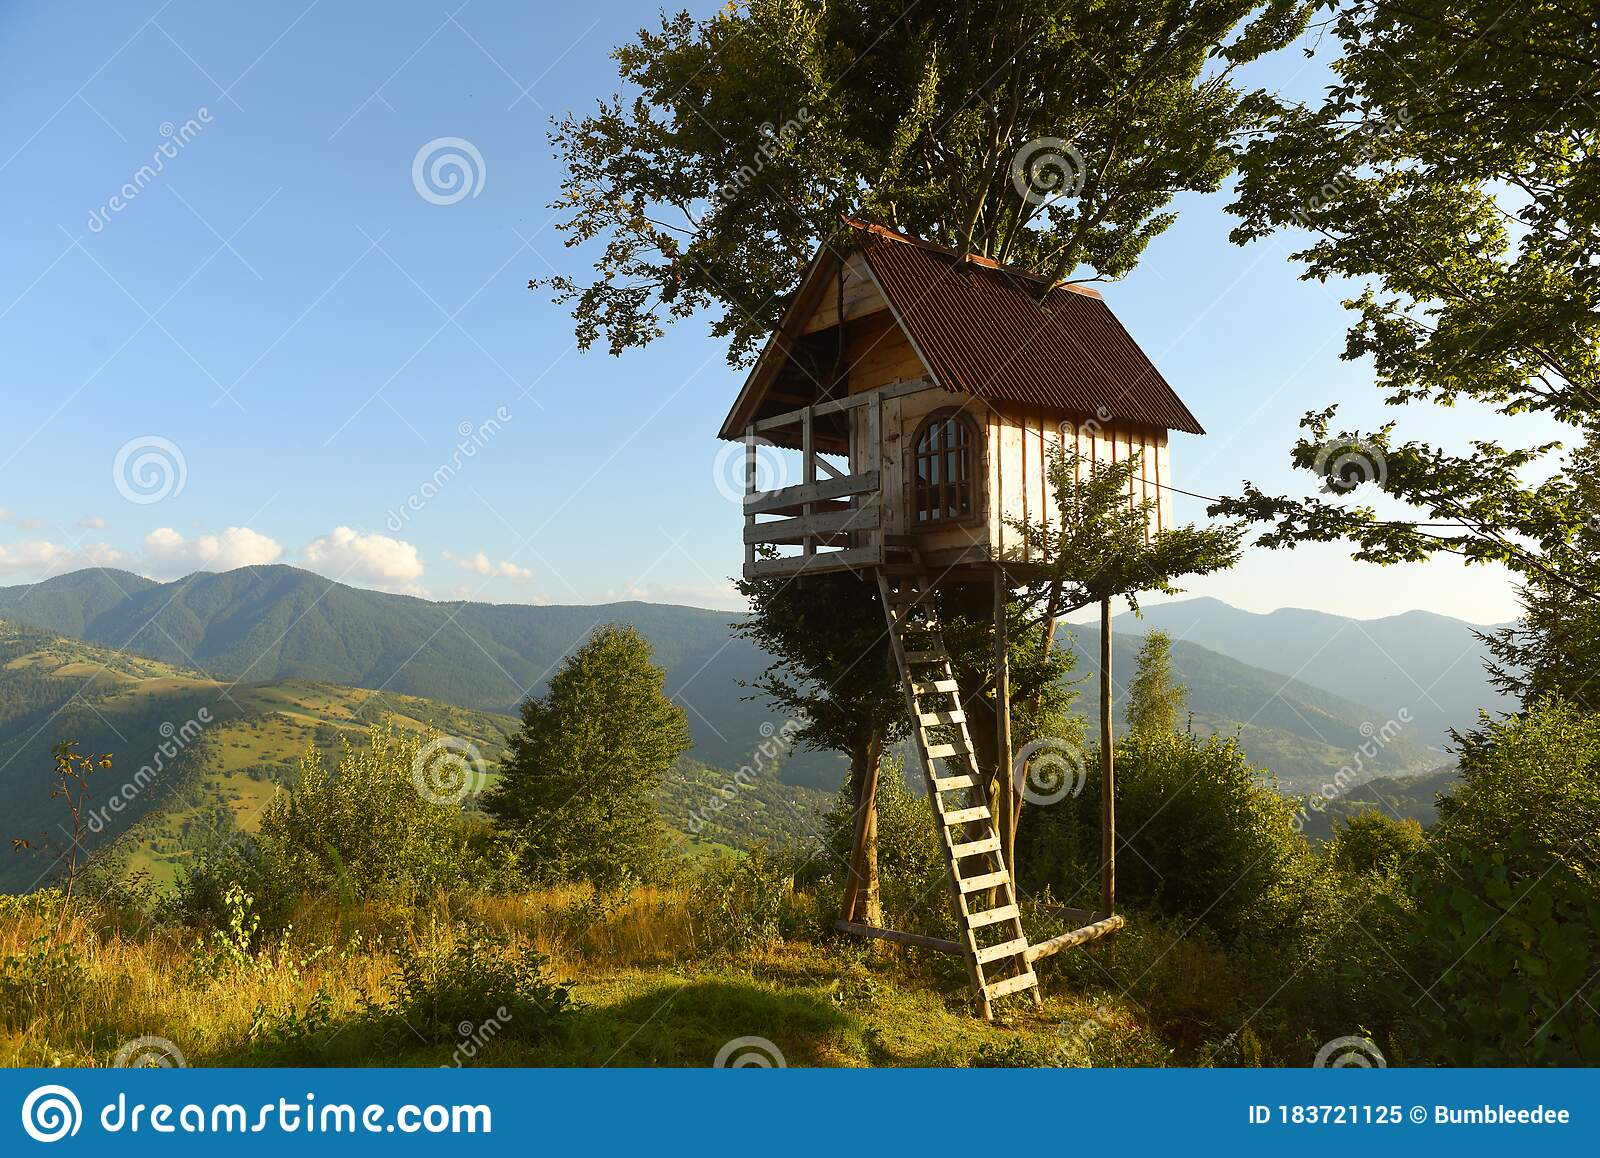 Picture of: Tree House In The Mountains A Children S Treehouse Stock Image Image Of Kids Building 183721125